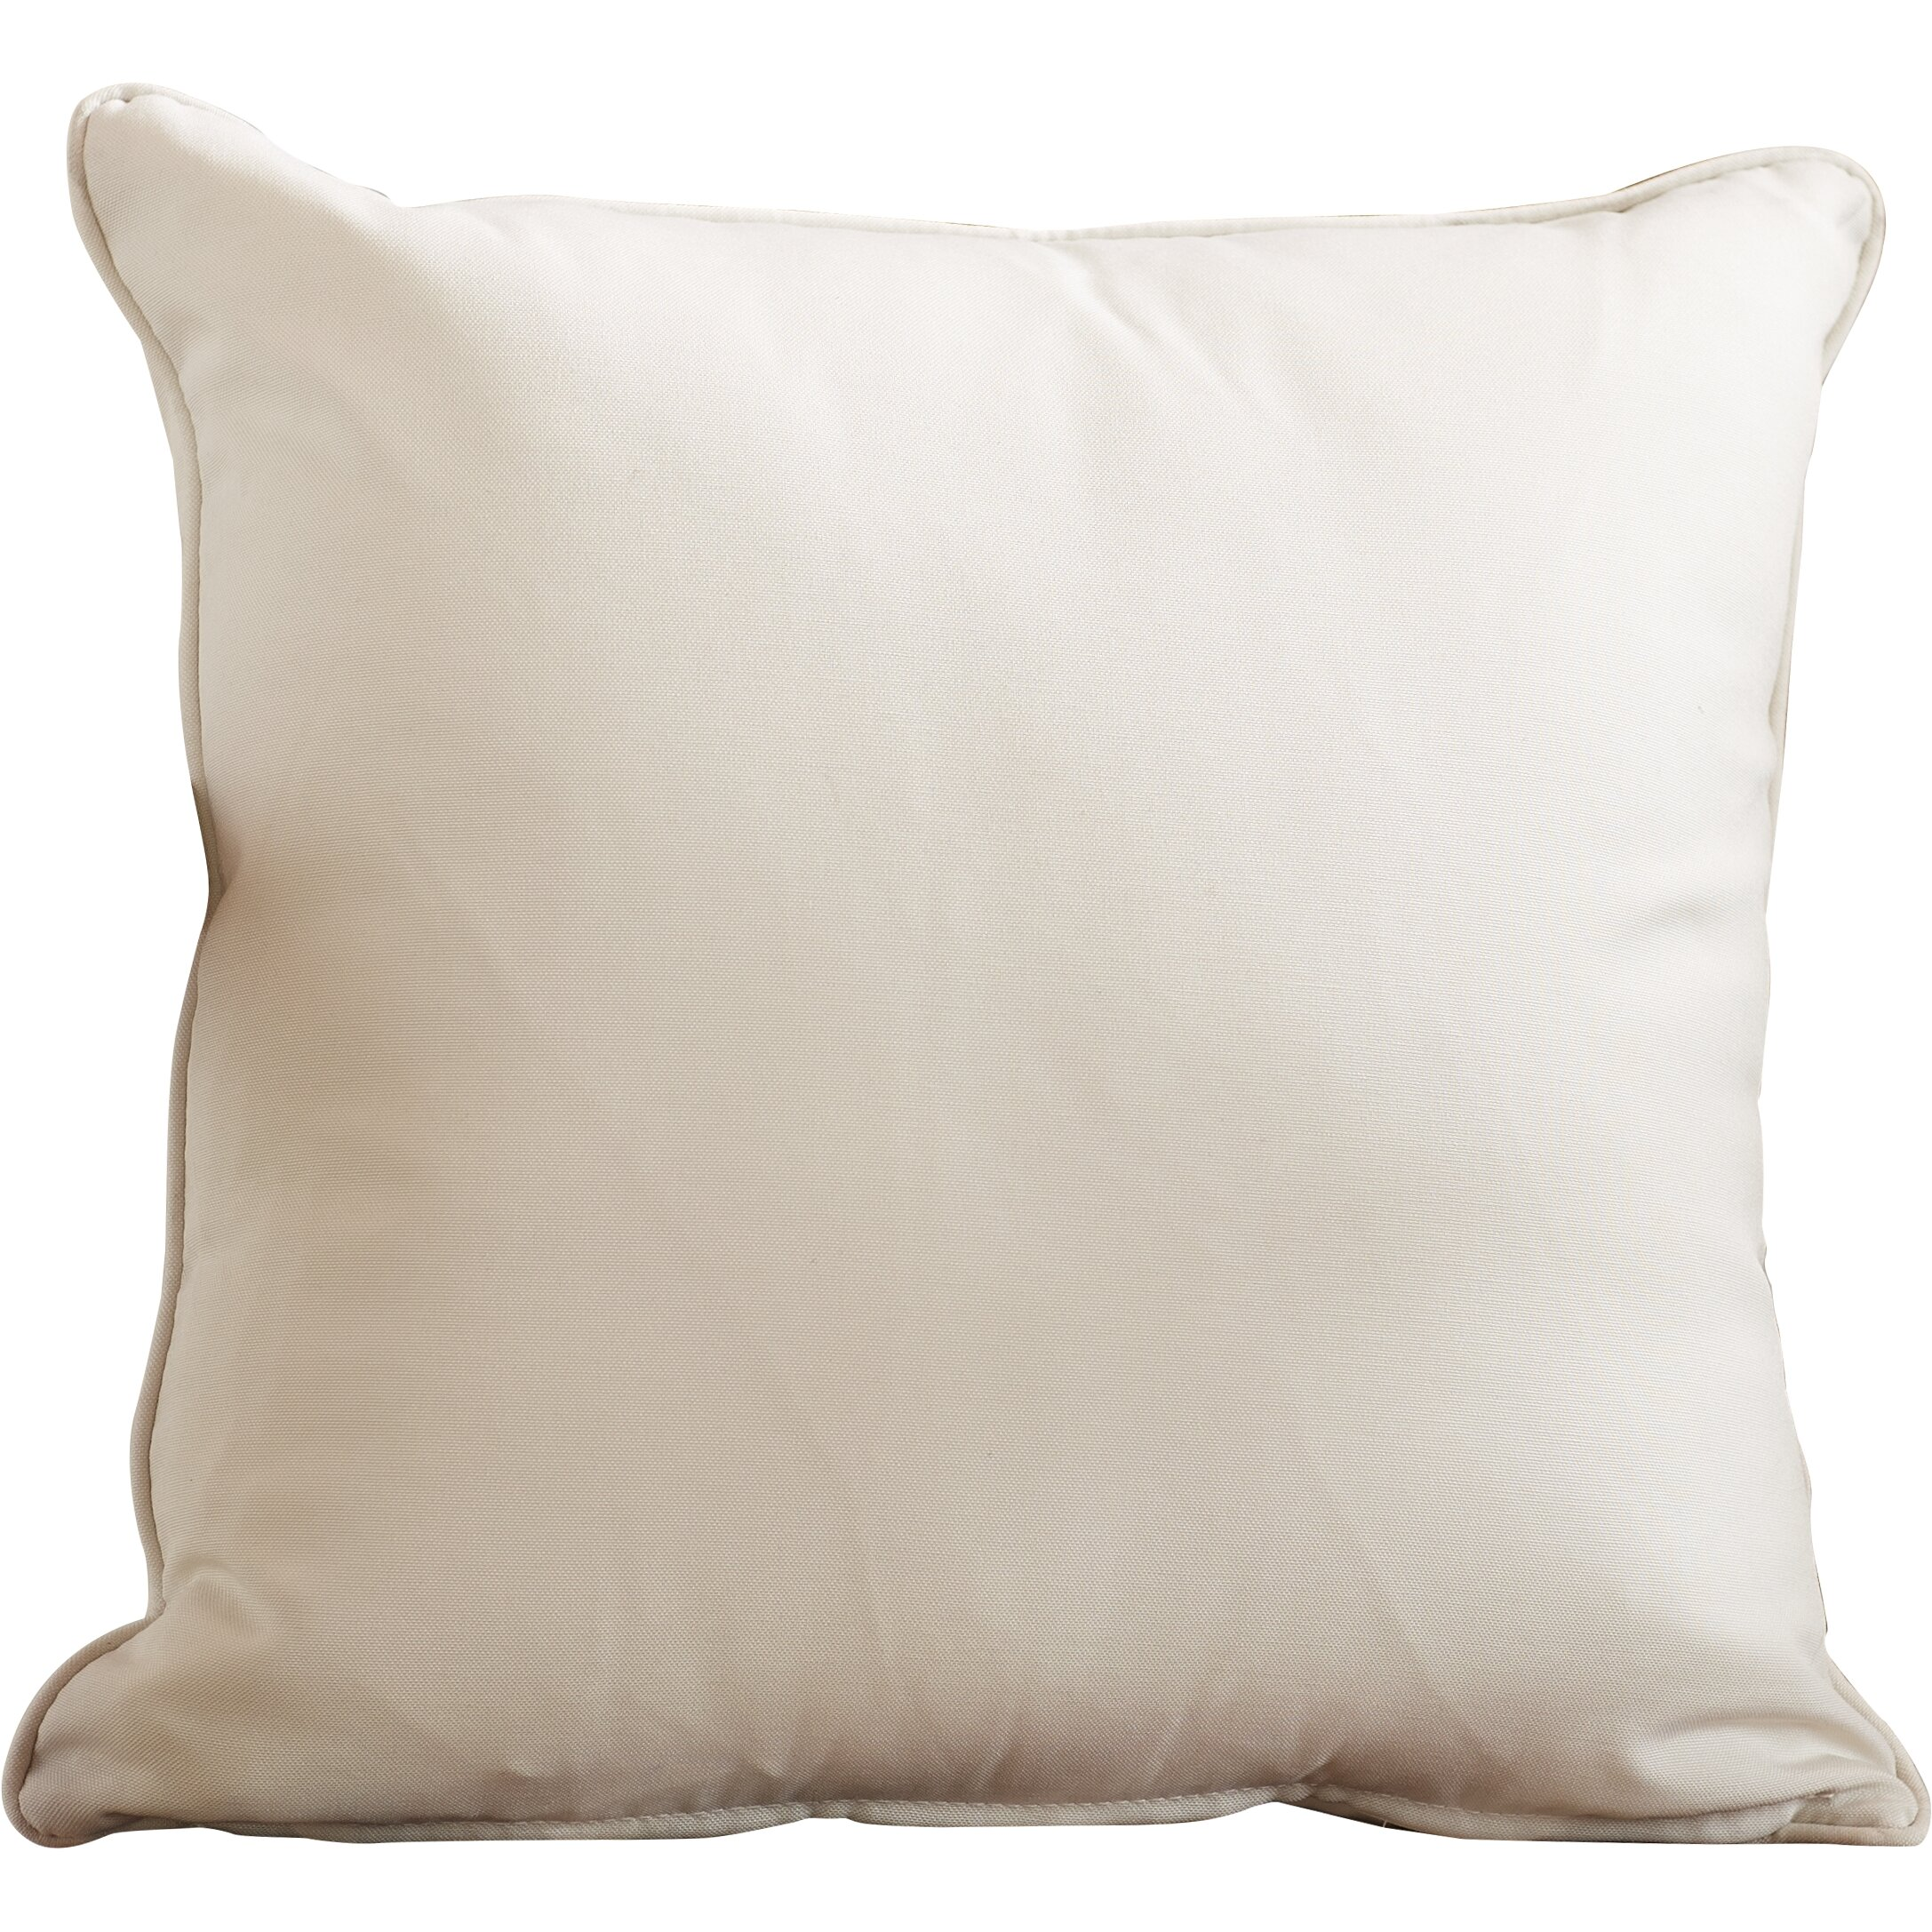 Wayfair Custom Outdoor Cushions Outdoor Throw Pillow & Reviews Wayfair.ca